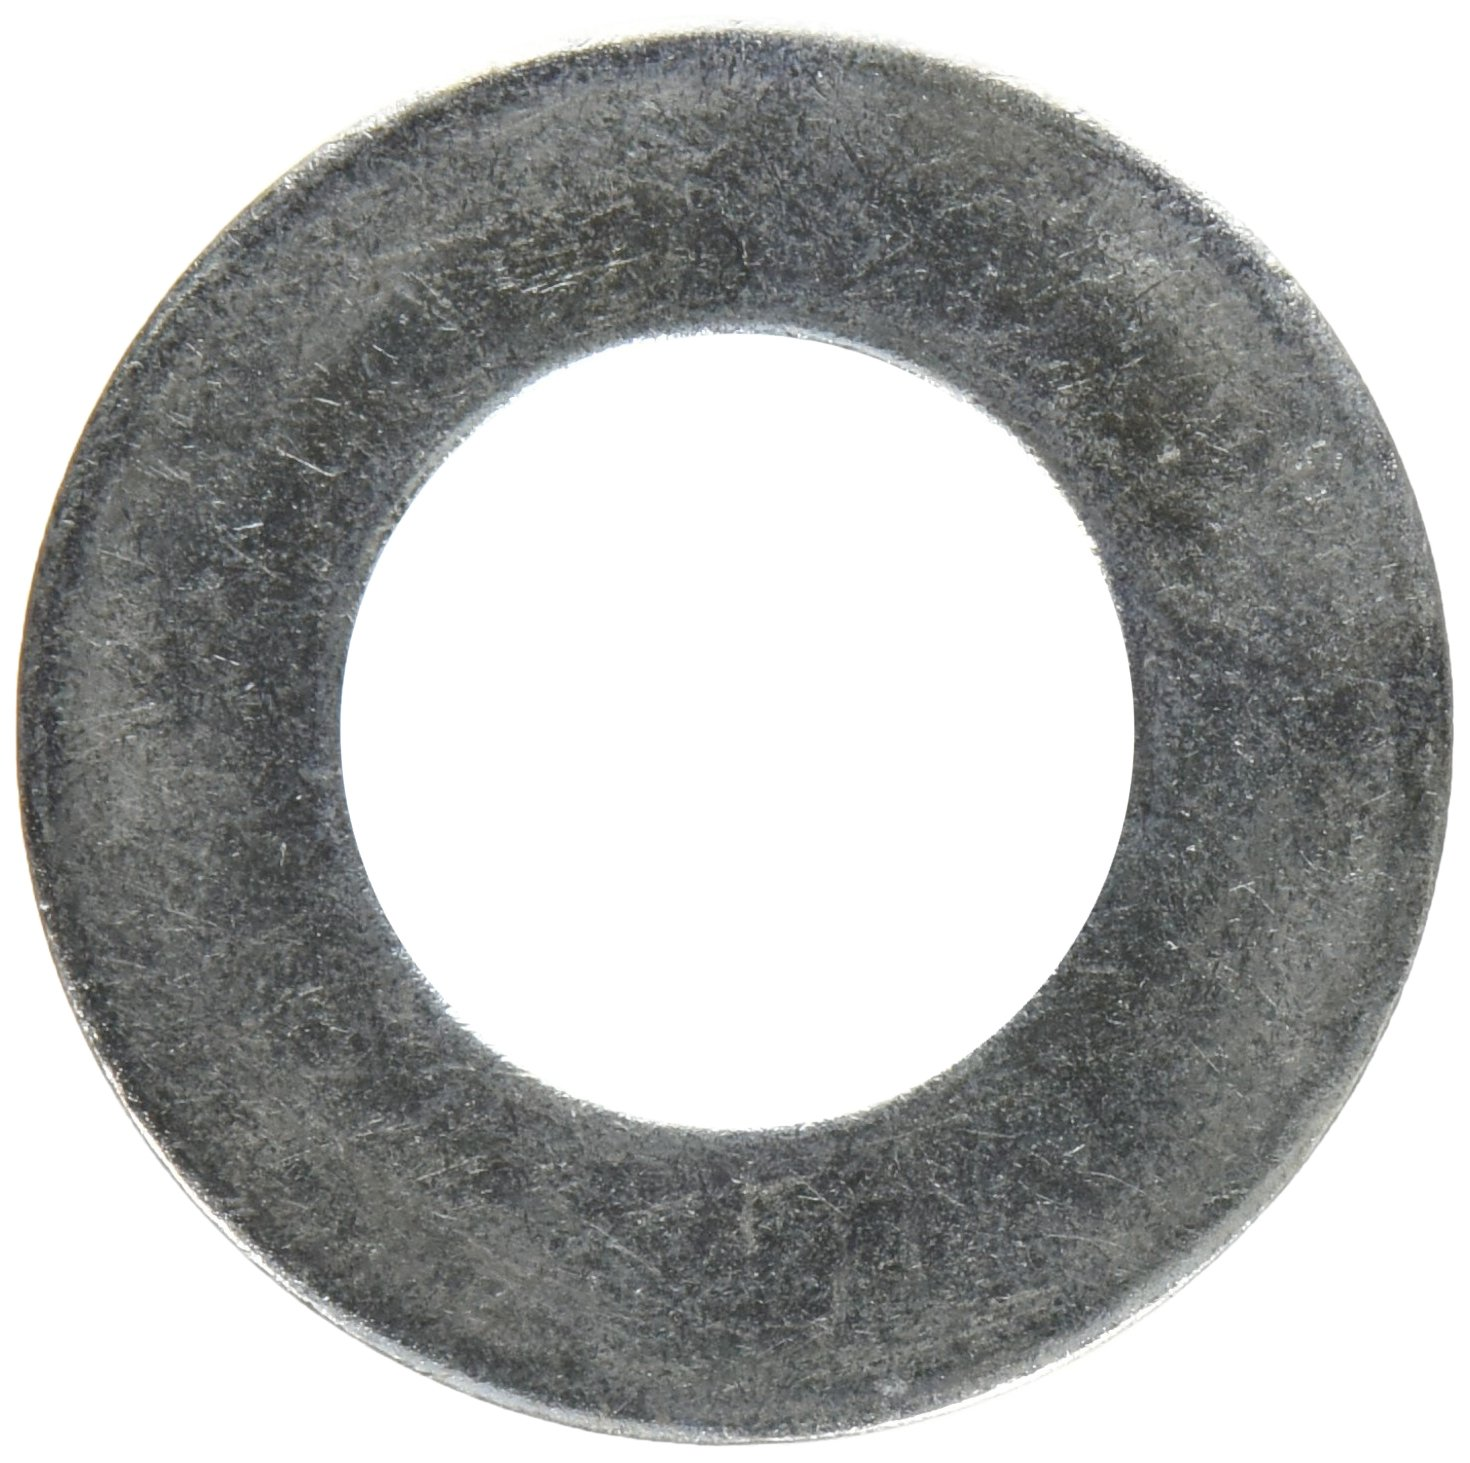 The Hillman Group 280046 1-1//2-Inch Flat Washer